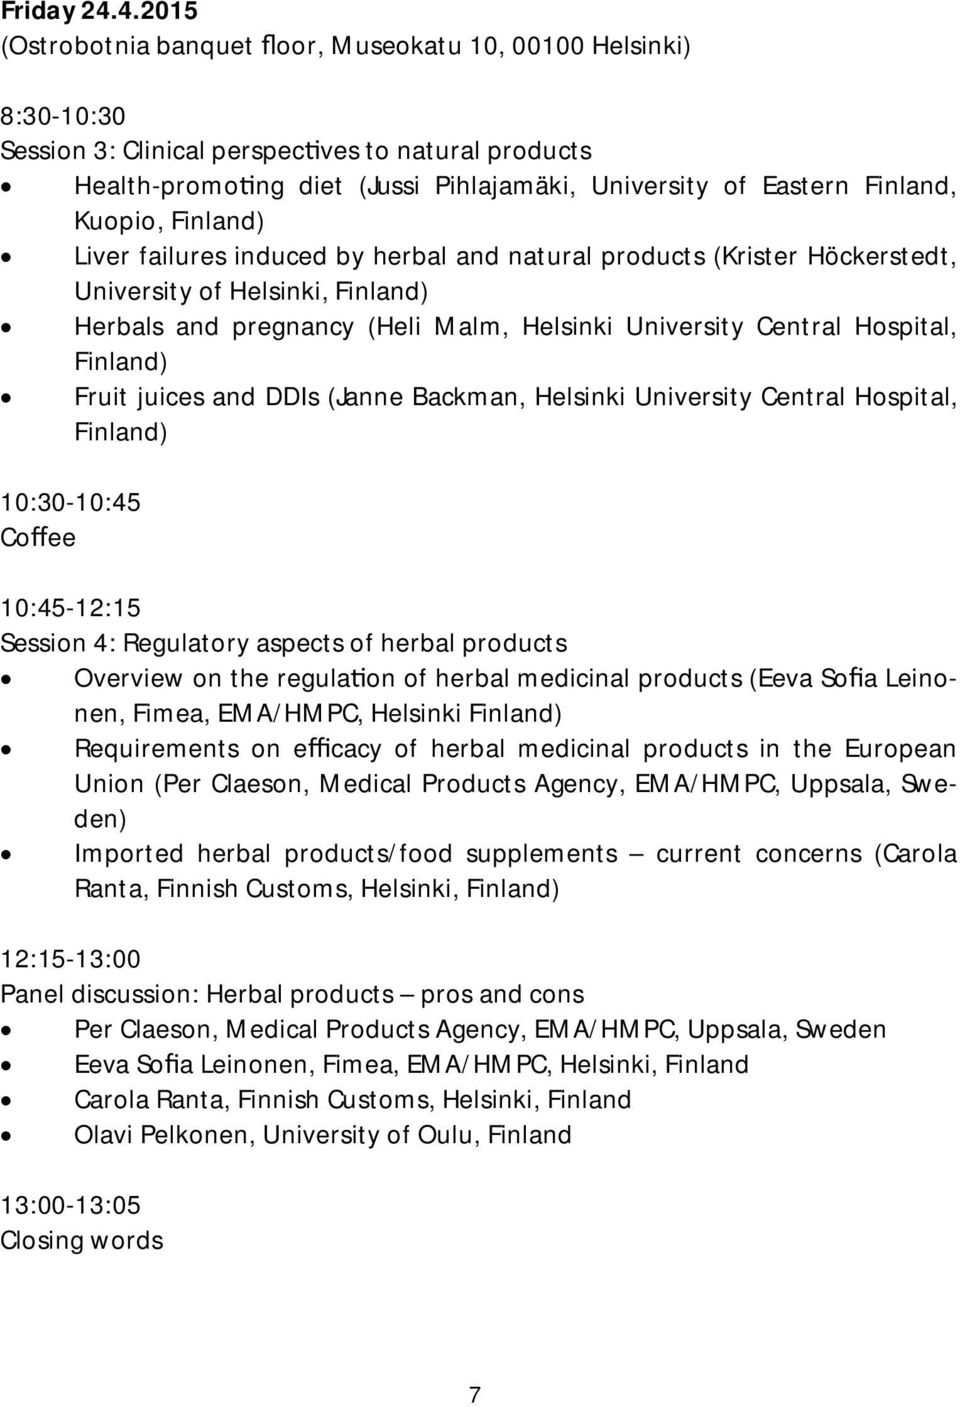 Kuopio, Finland) Liver failures induced by herbal and natural products (Krister Höckerstedt, University of Helsinki, Finland) Herbals and pregnancy (Heli Malm, Helsinki University Central Hospital,